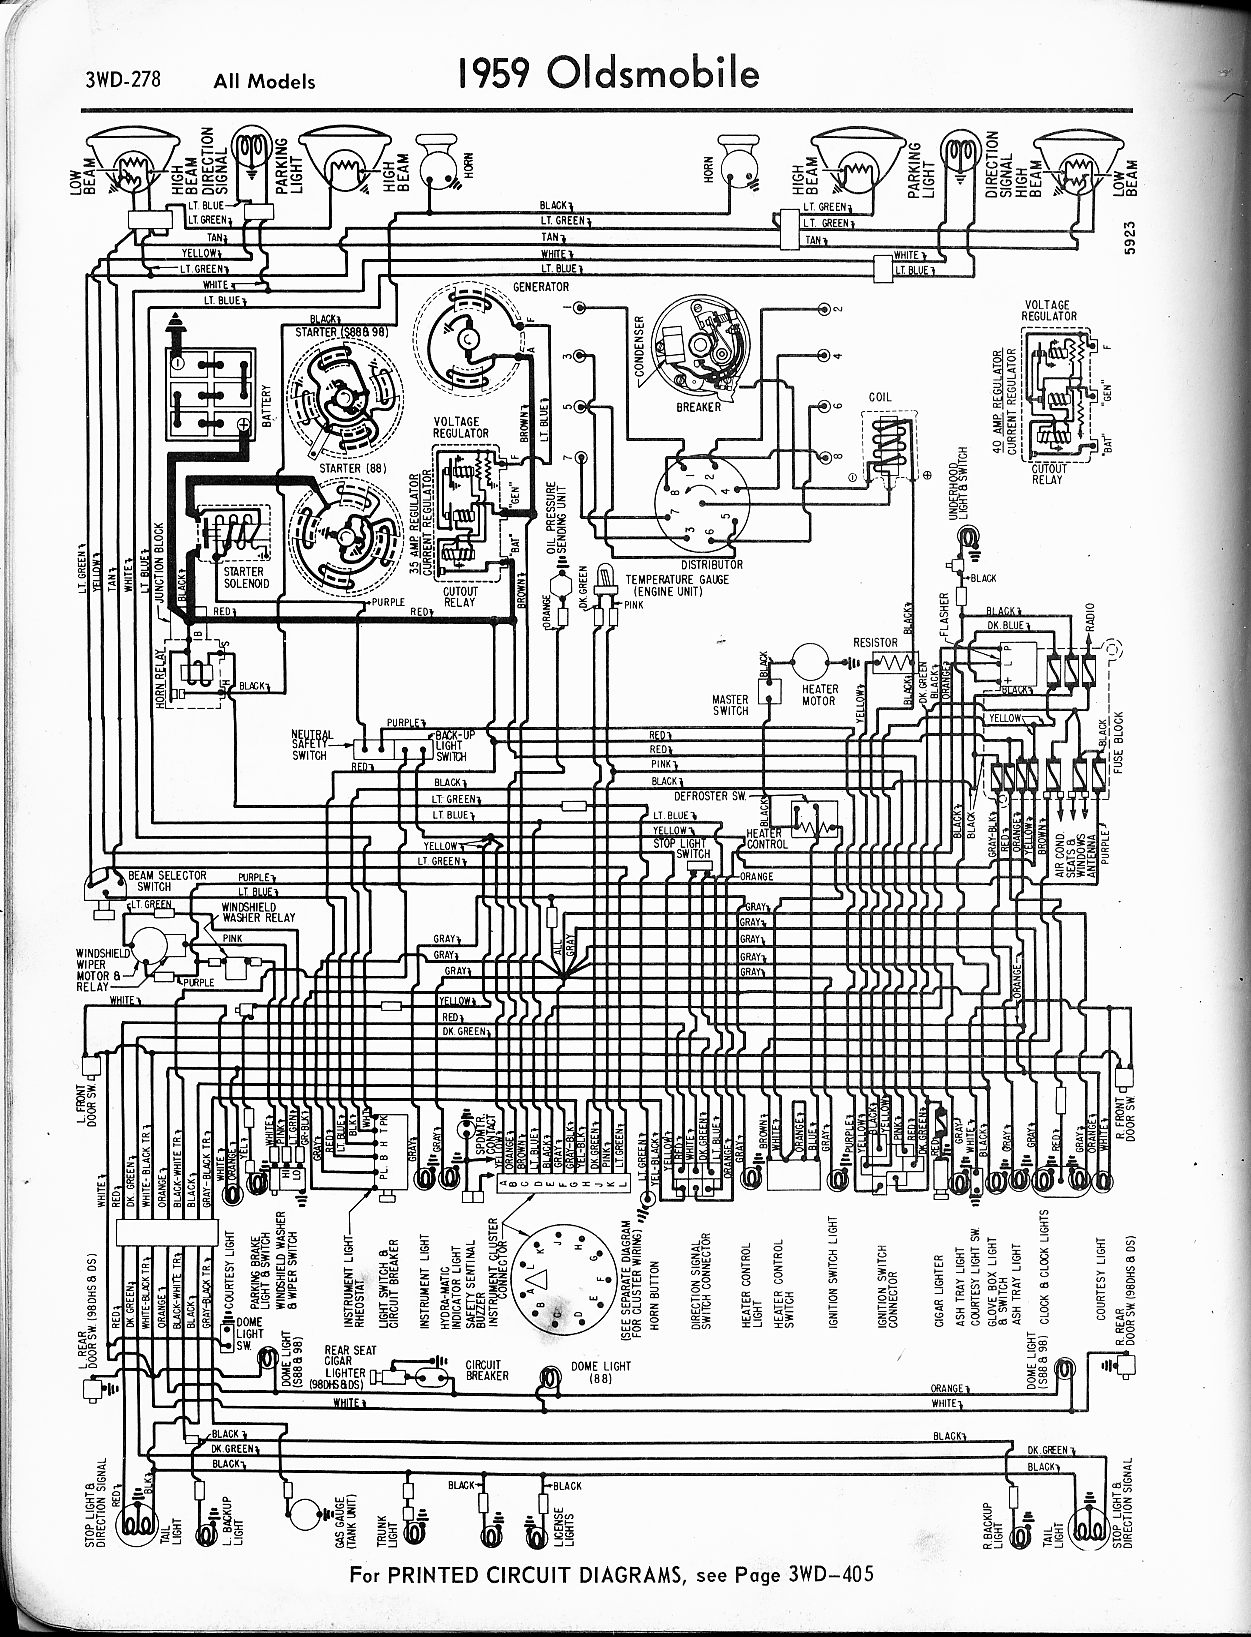 oldsmobile wiring diagrams - the old car manual project 1967 oldsmobile 98 wiring diagram